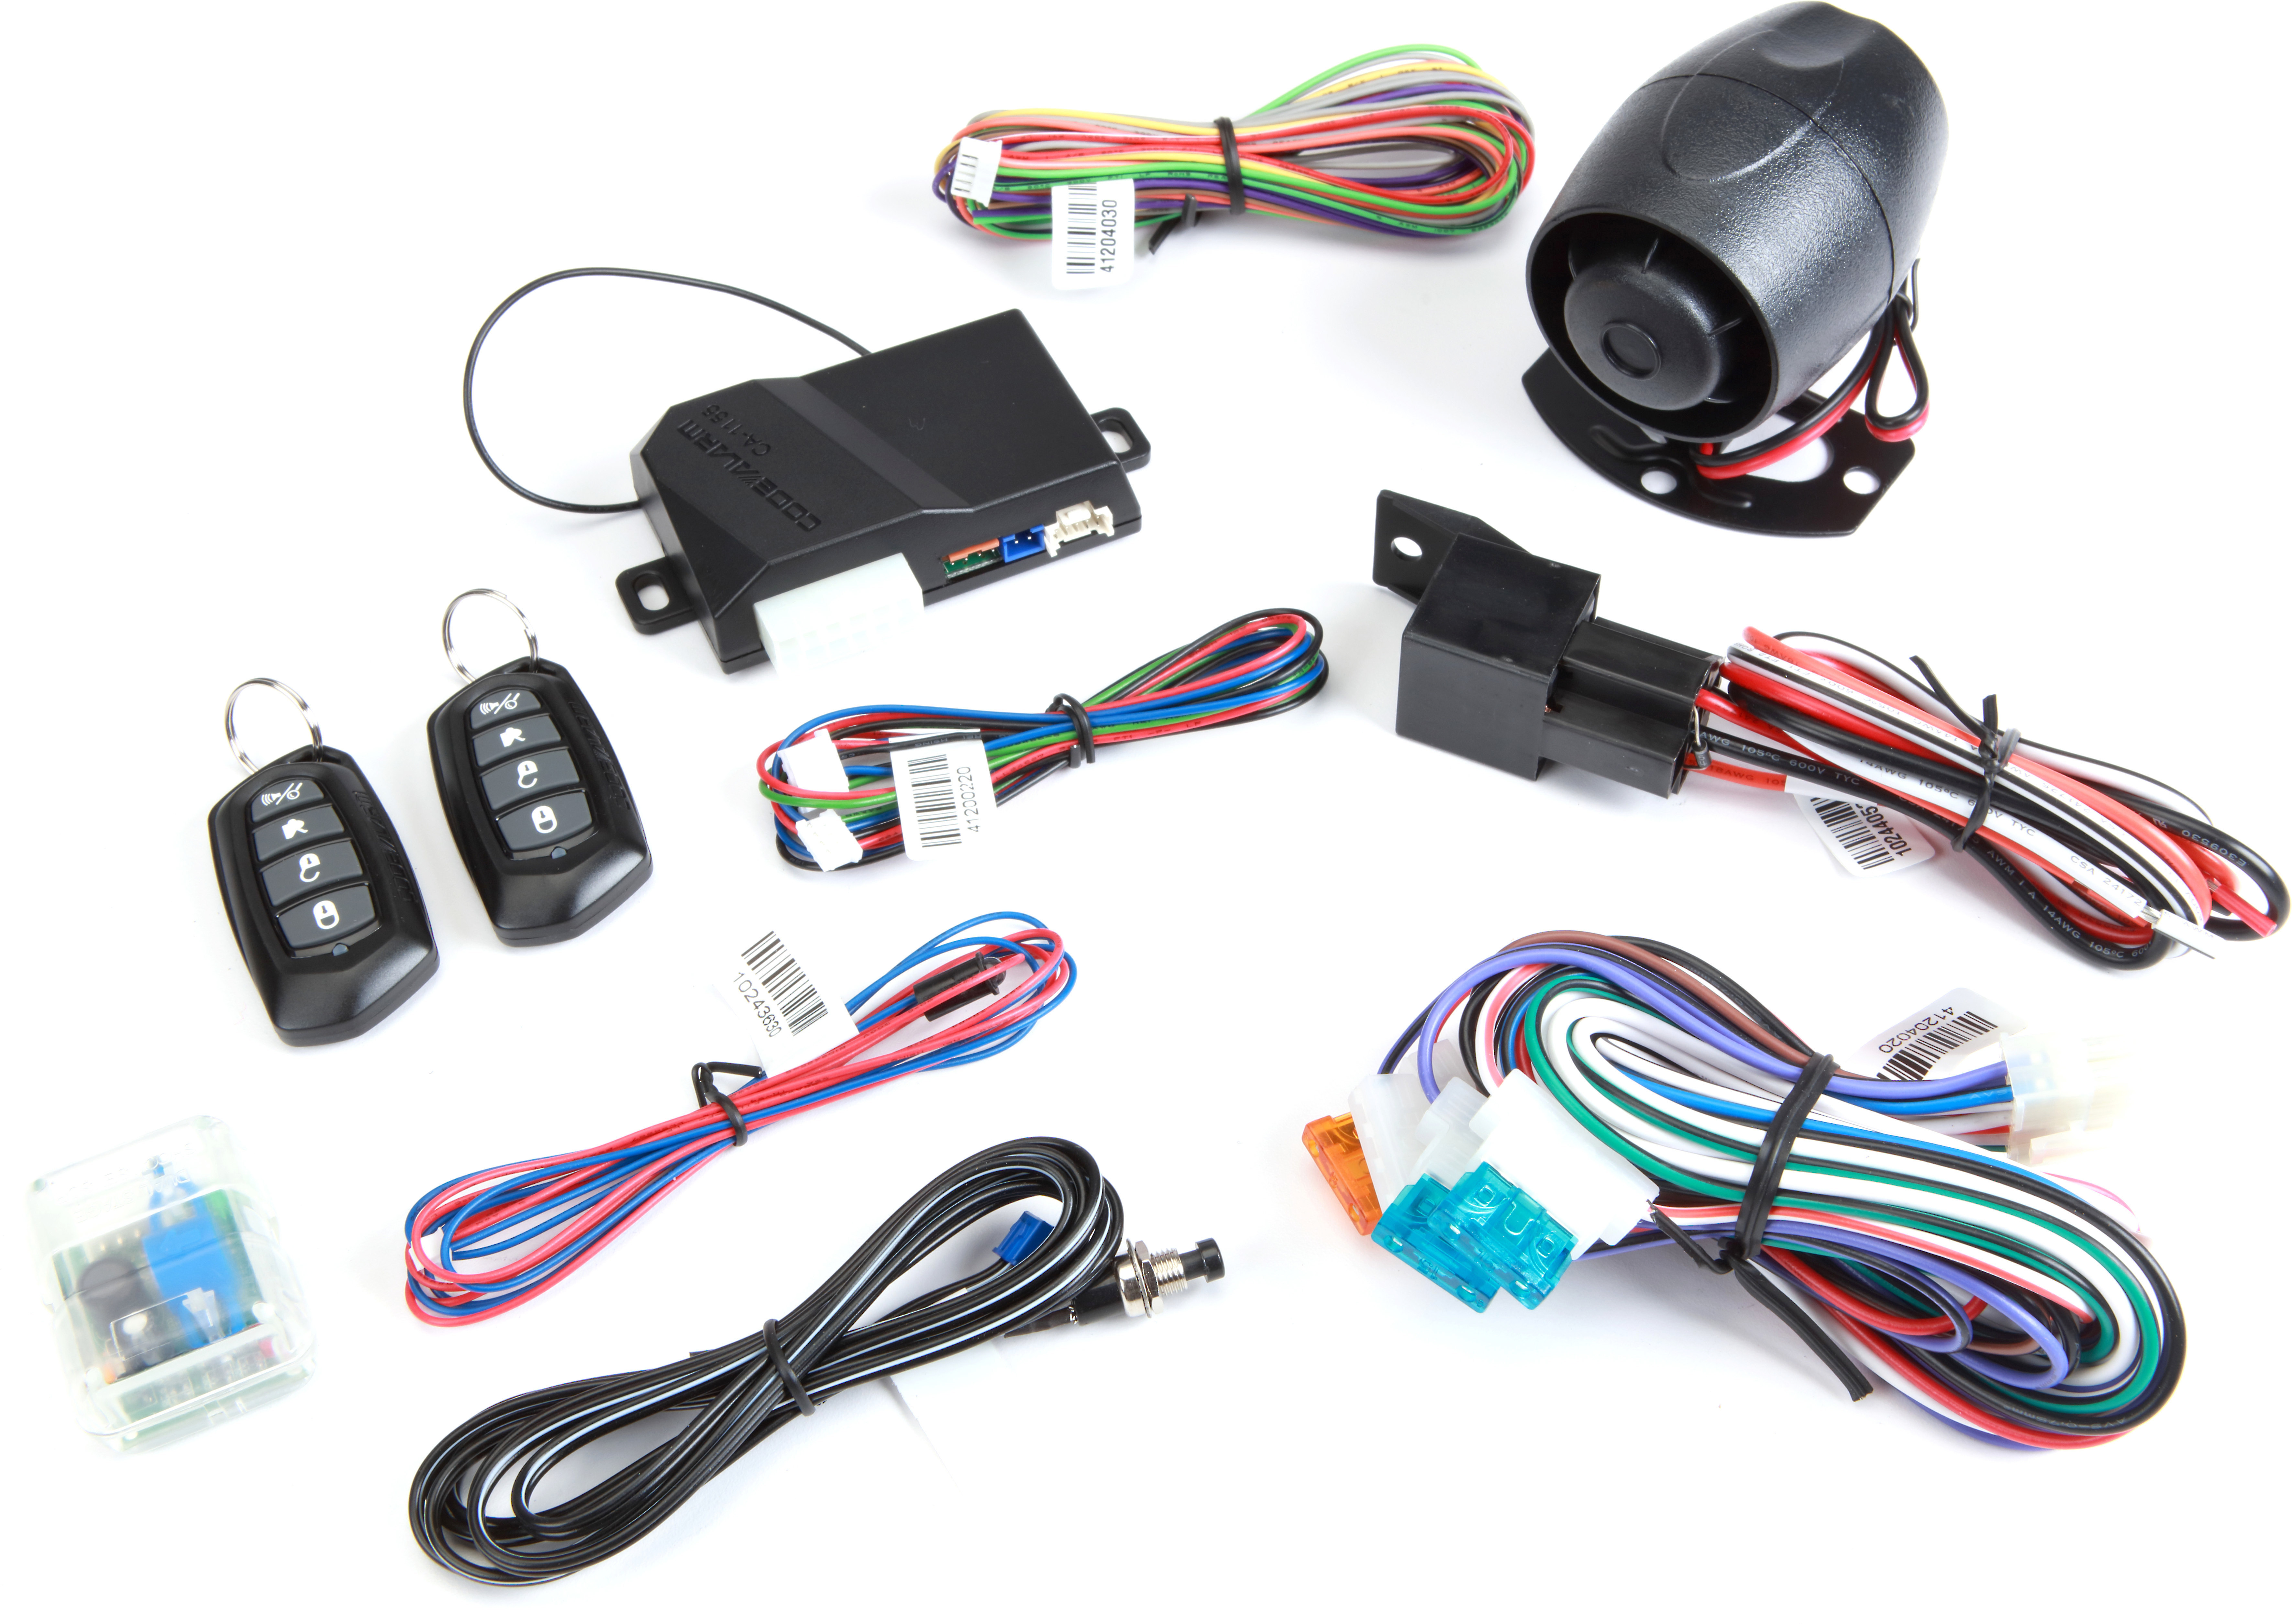 Code Alarm CA1155 Car security and keyless entry system with auxiliary  output at CrutchfieldCrutchfield